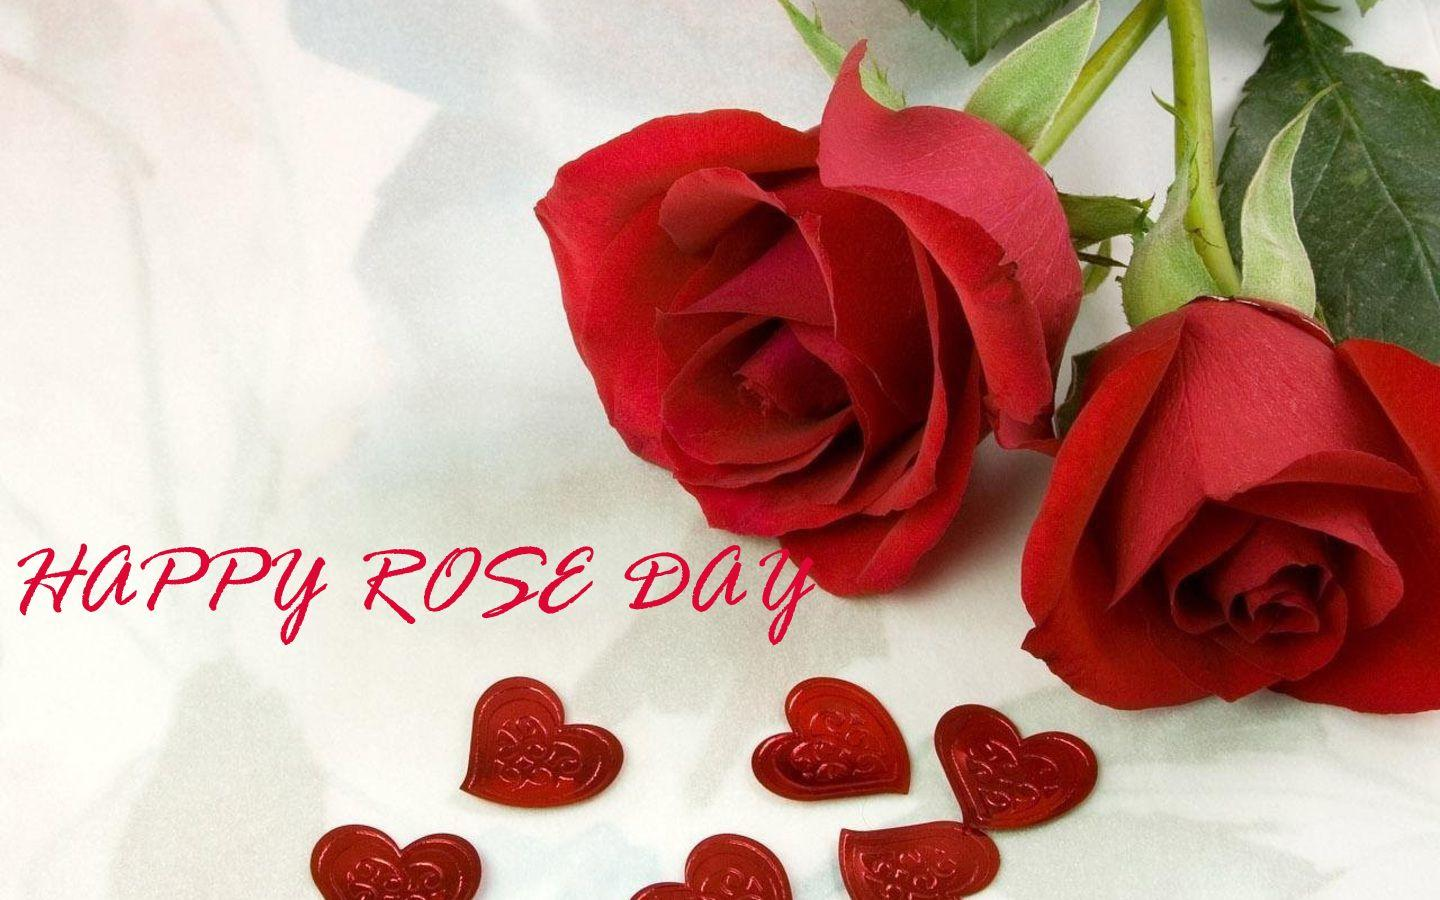 Best Rose Day Images Wallpapers Greetings 2021 2021 wishes shayari rose day wallpaper